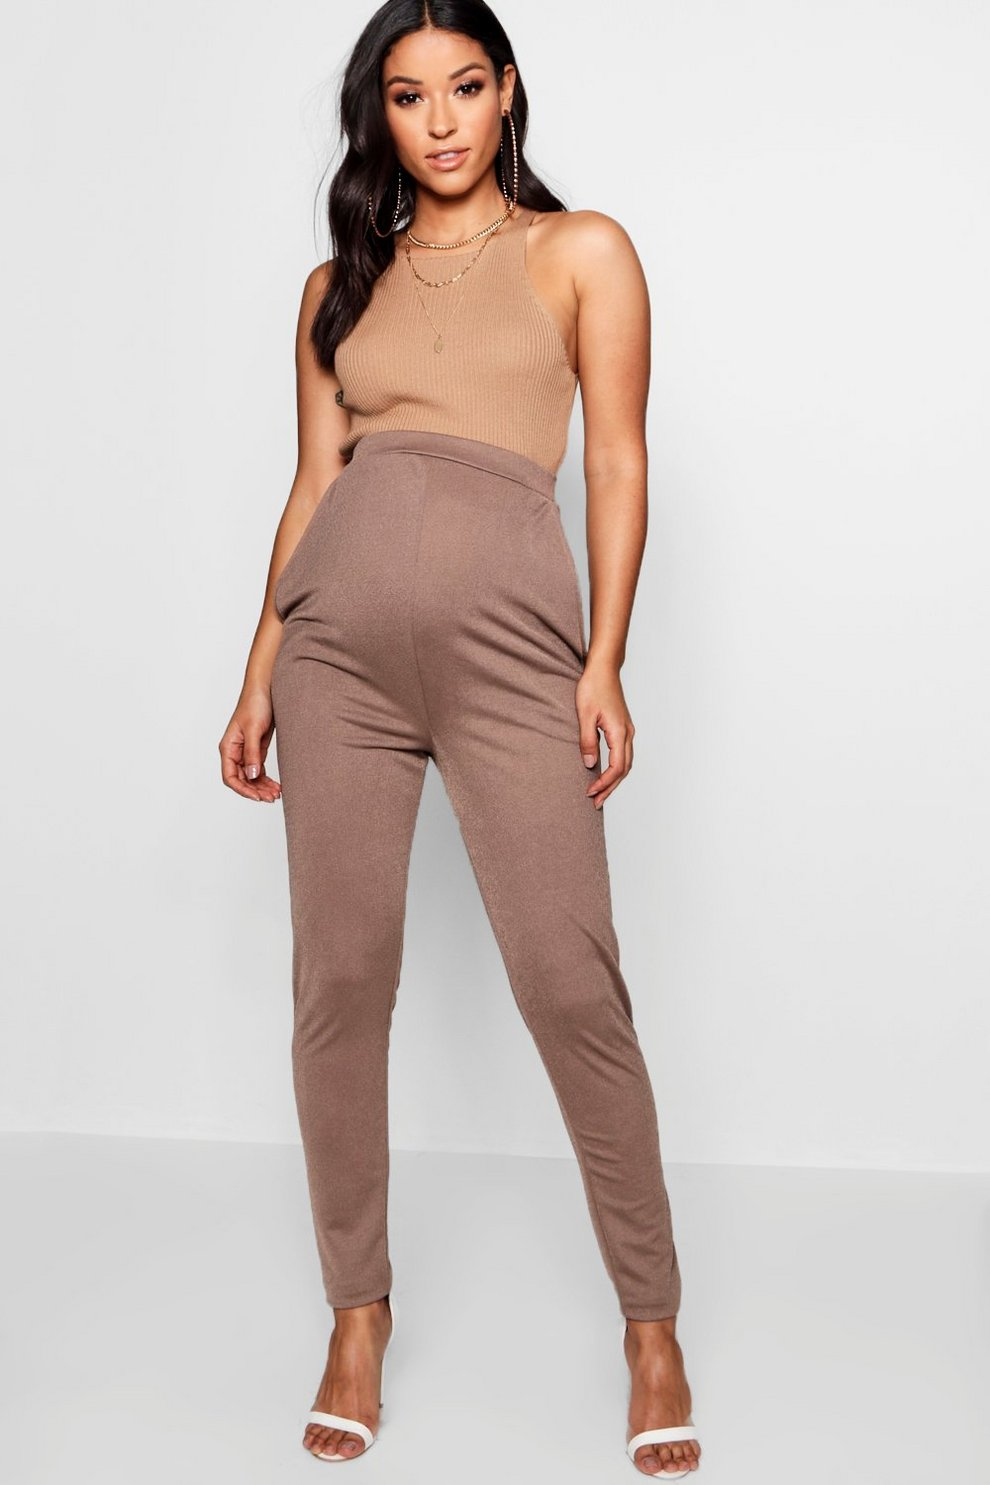 Outlet Amazing Price Marketable Cheap Price Boohoo Maternity Tailored Slim Leg Trousers EmUqWOy